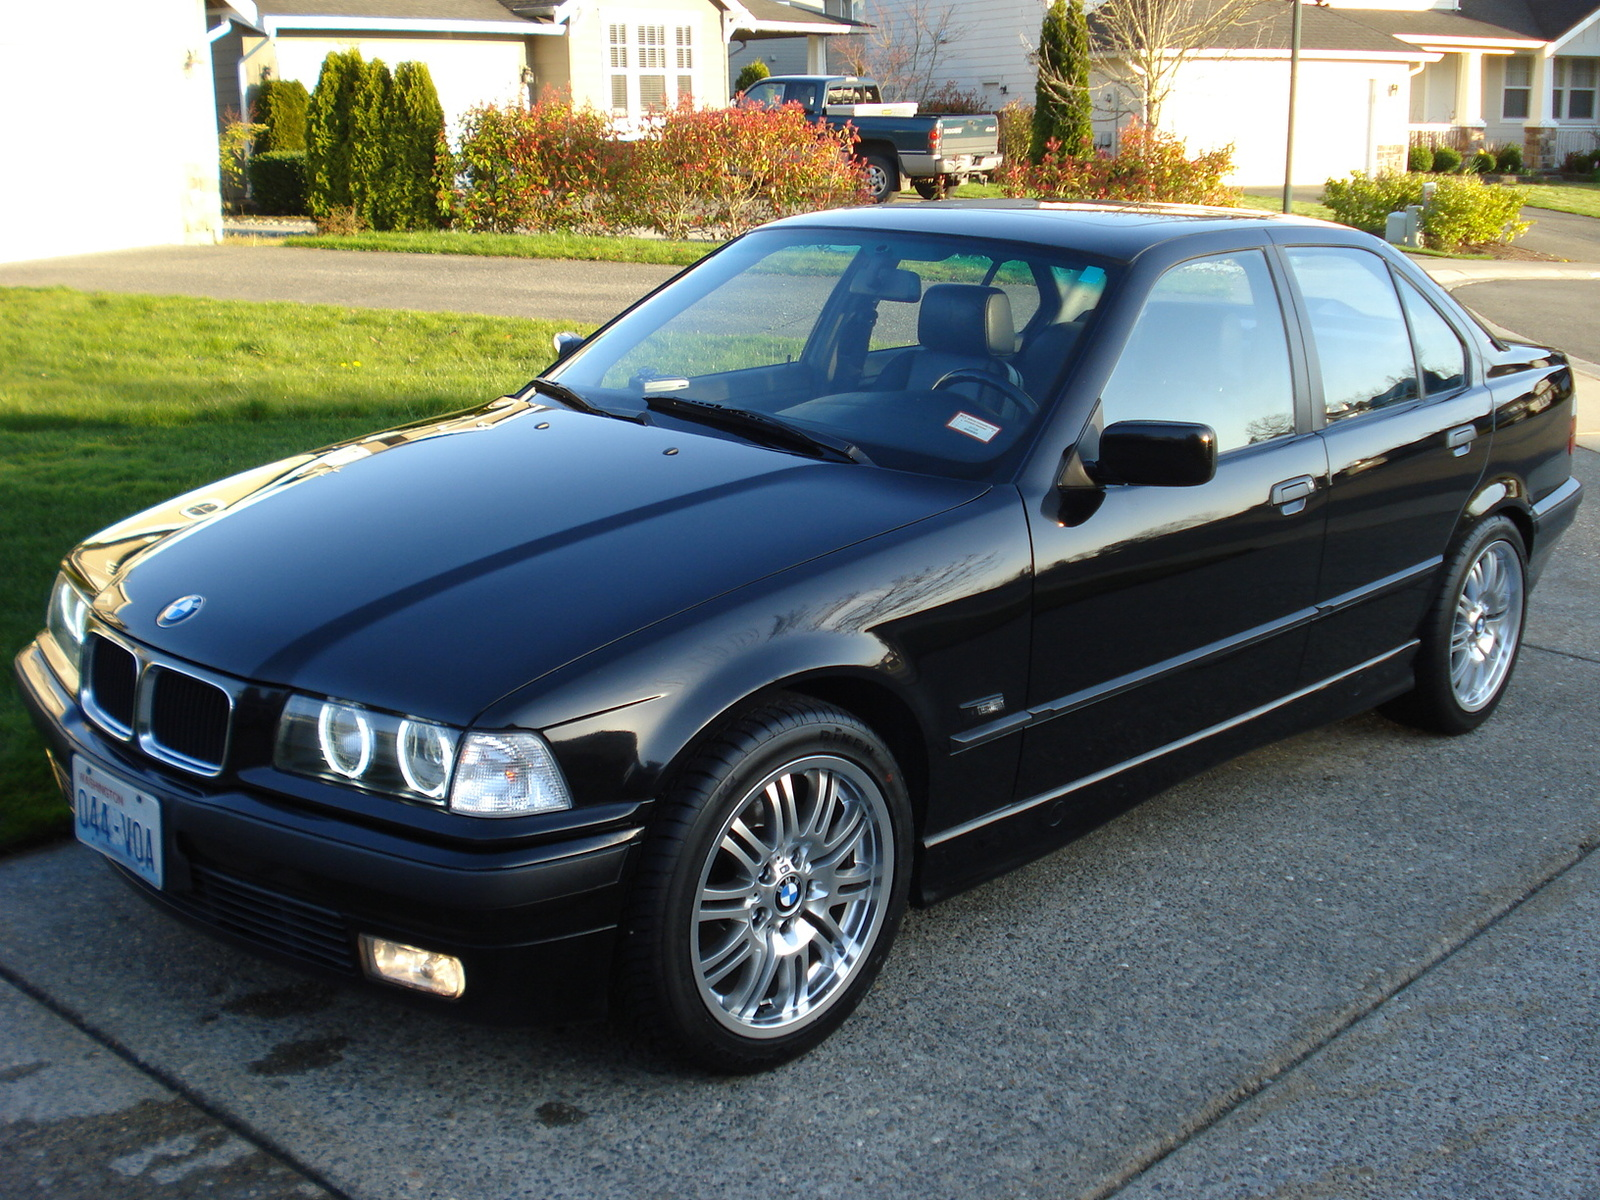 BMW 3 series 318is 1996 photo - 1